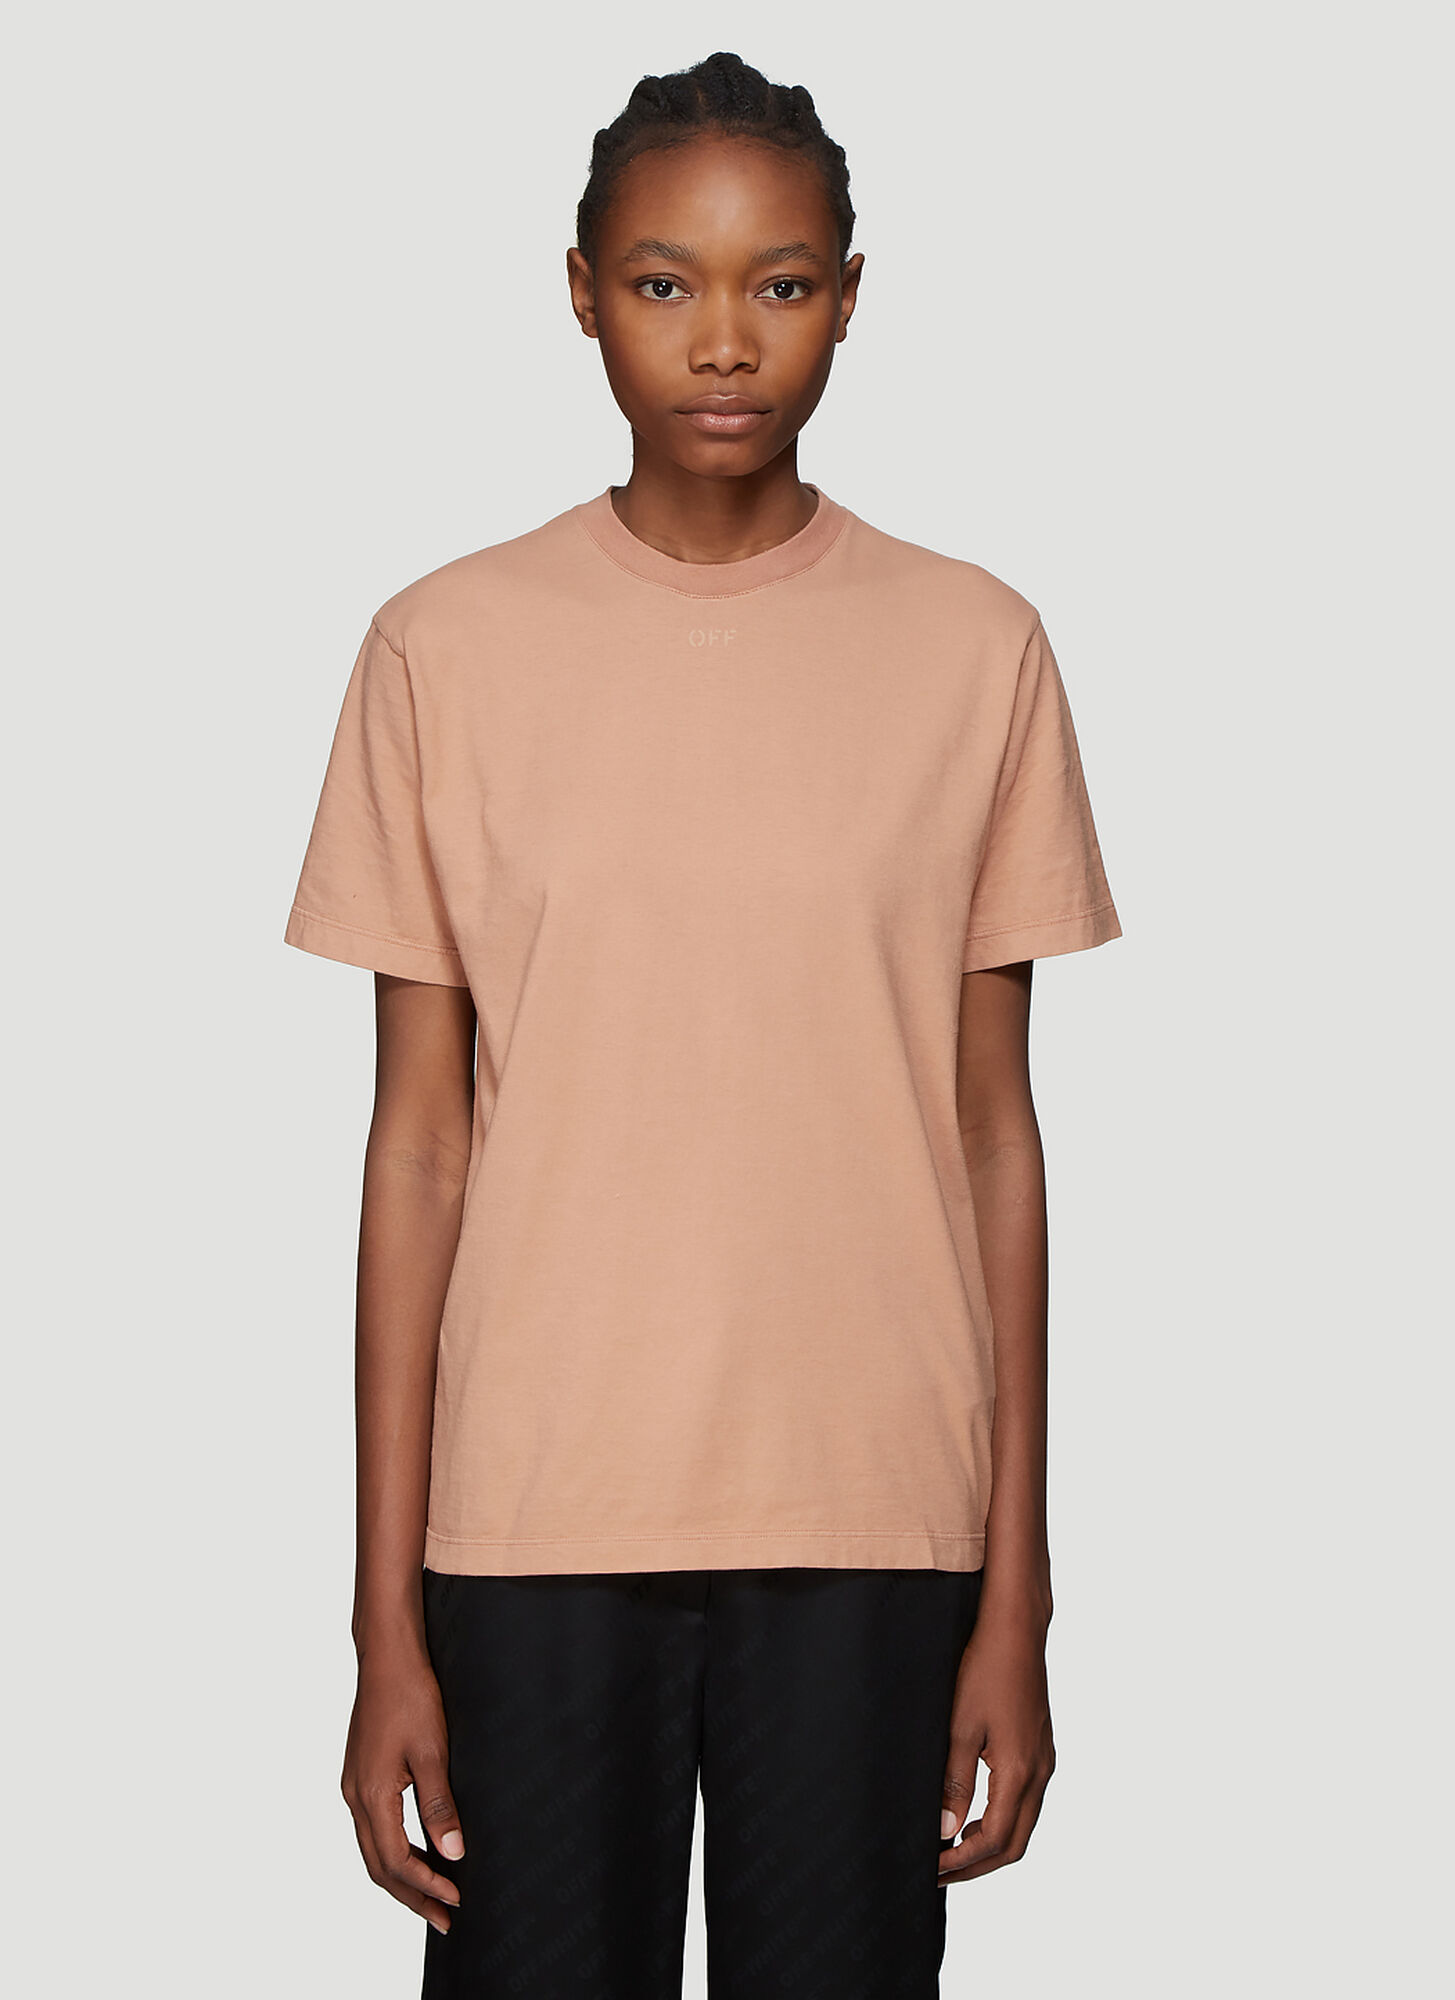 Off-White Arrows T-Shirt in Beige